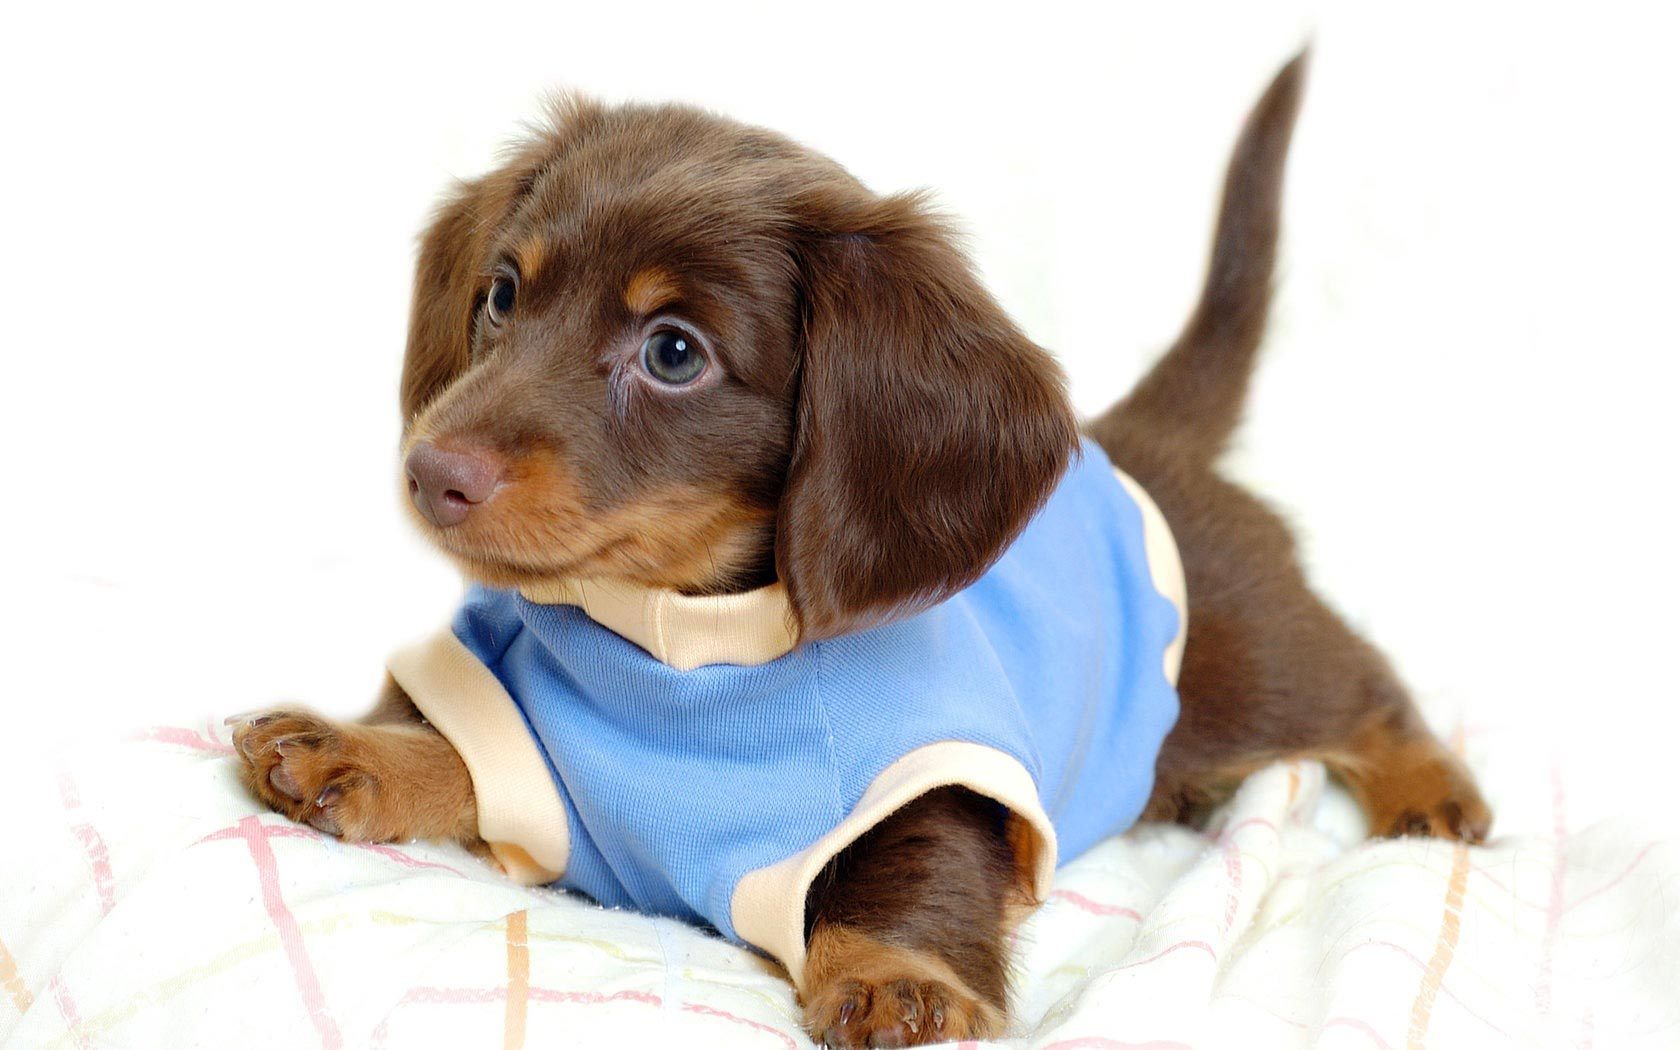 Puppy Clothes photo - 1